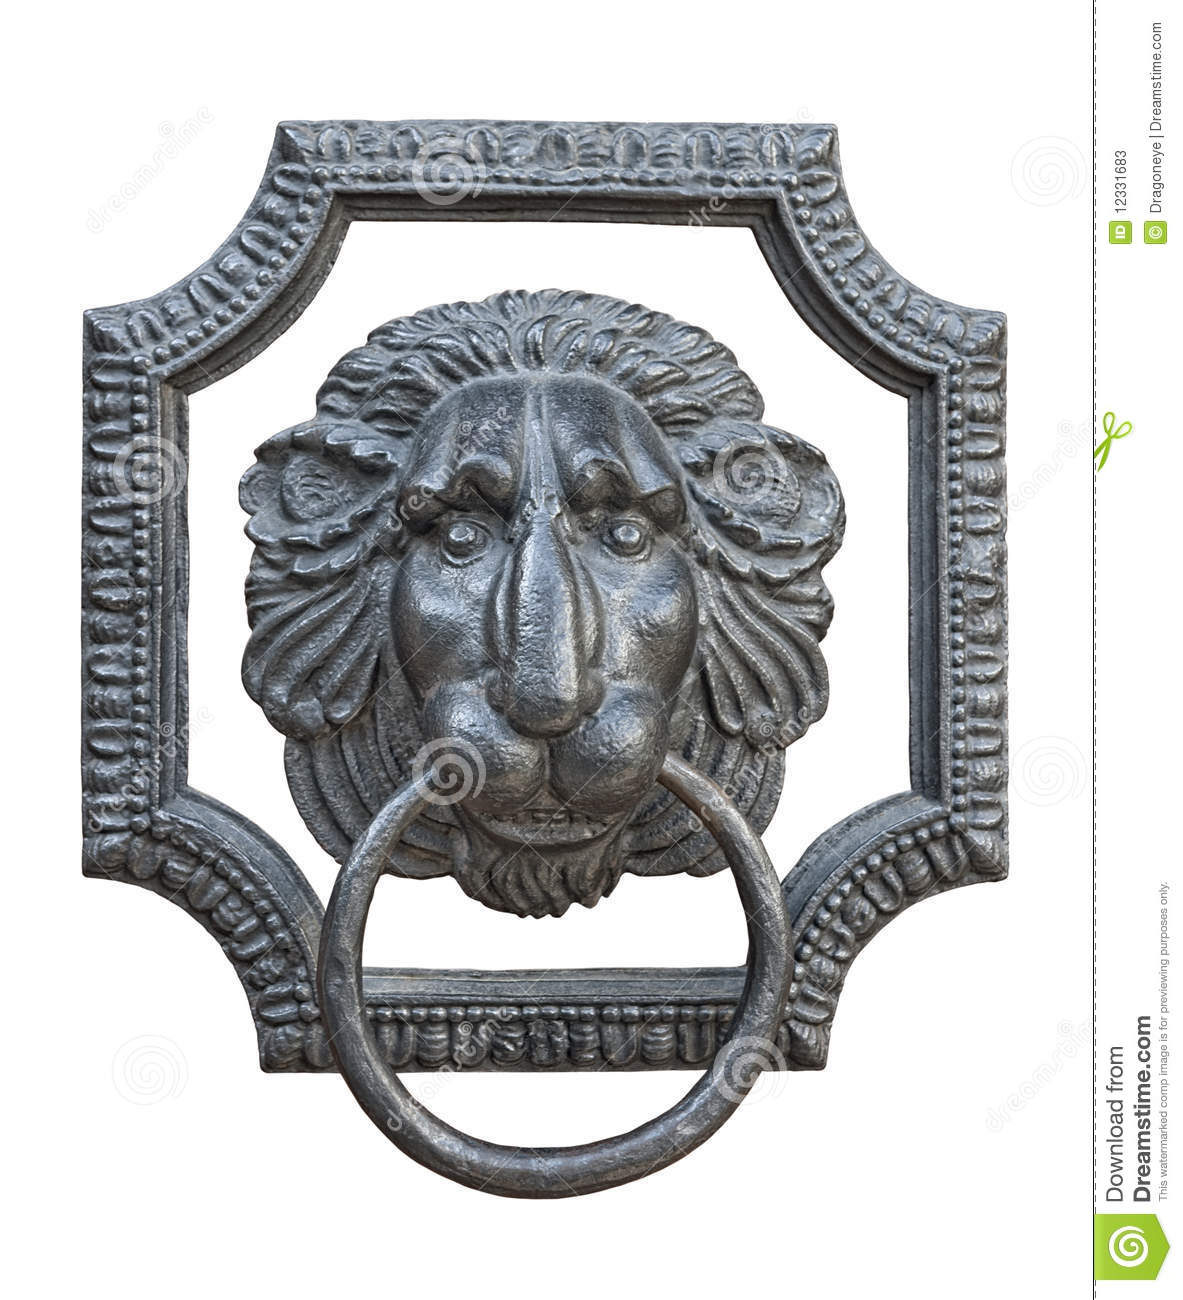 Medieval Door Knocker Cutout Stock Image Image Of Ring